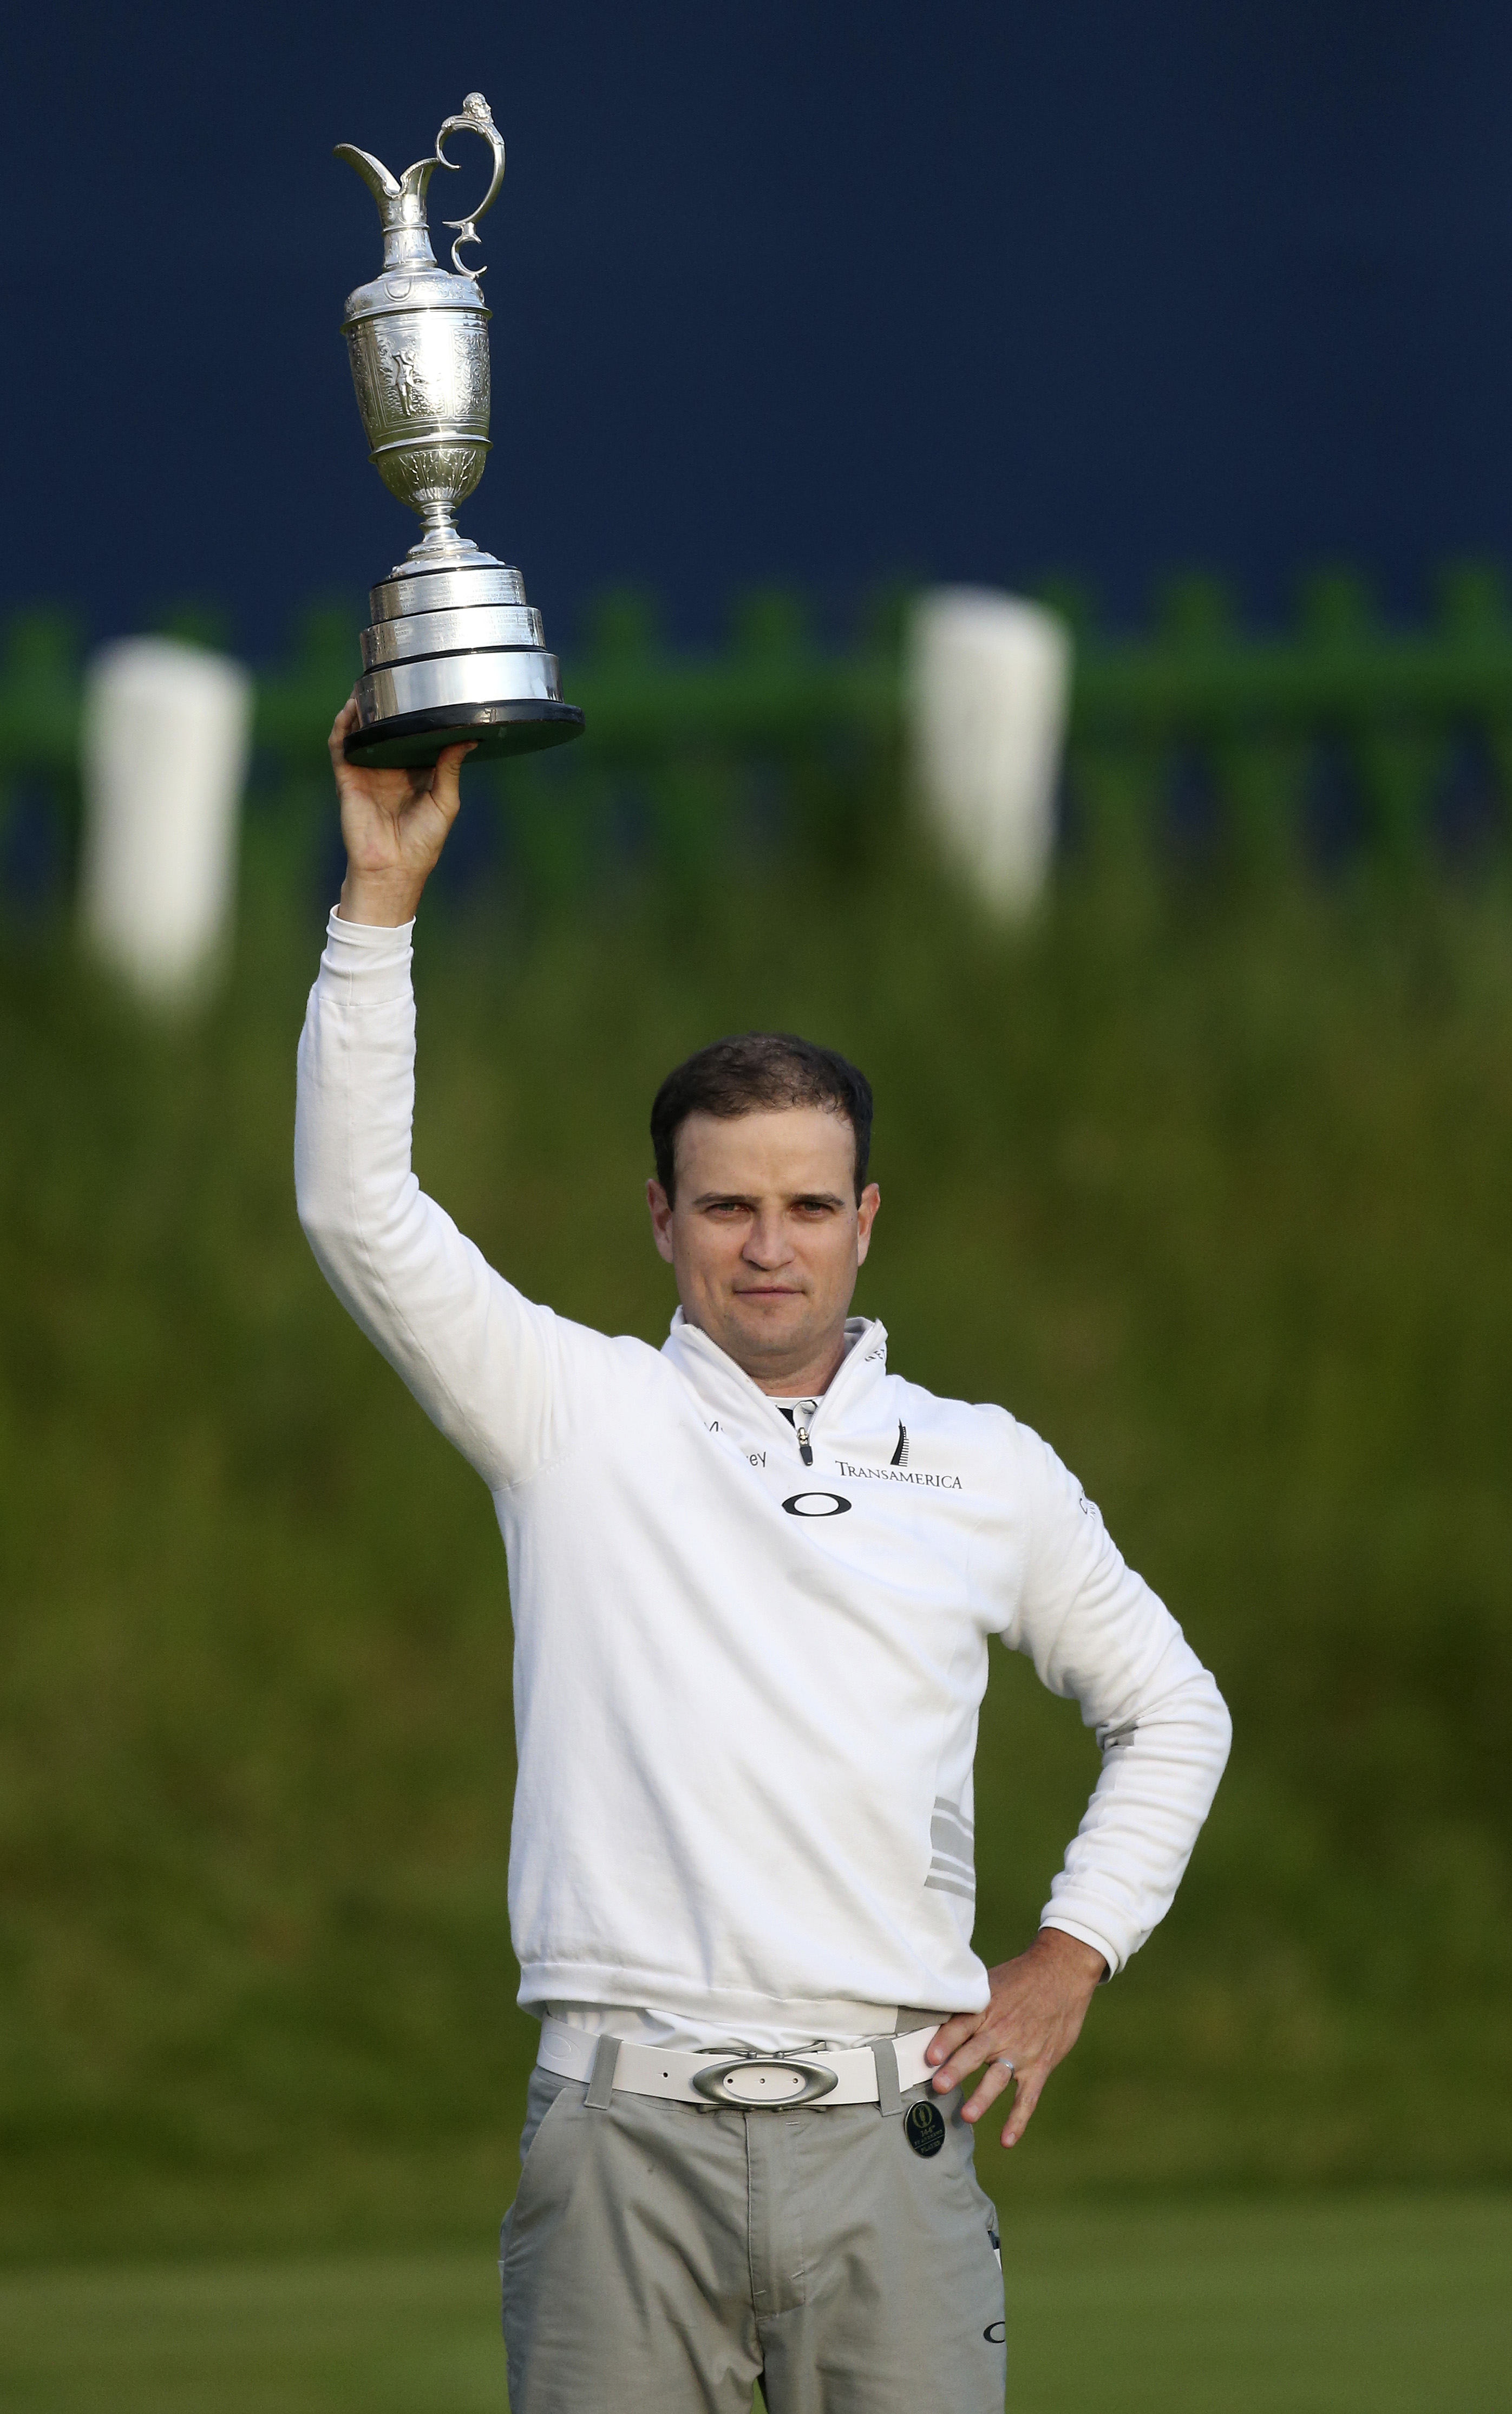 Zach Johnson of the United States holds aloft the trophy after winning the British Open Golf Championship at the Old Course in St Andrews, Scotland on Monday. Photo: AP